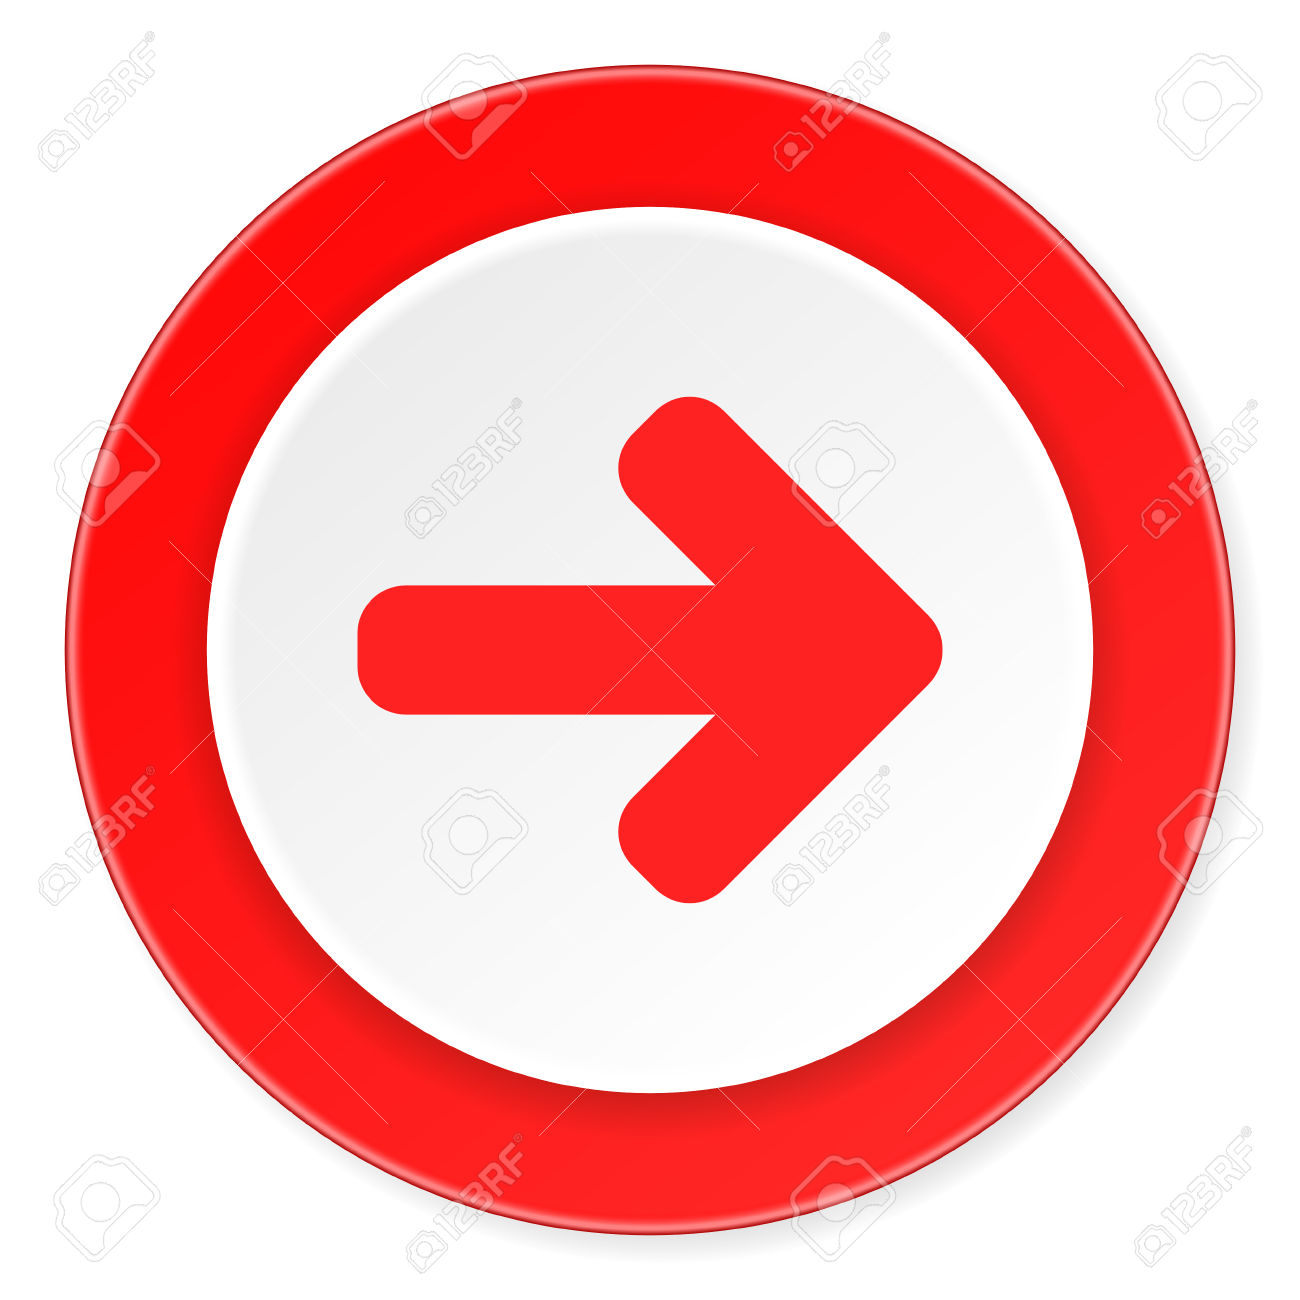 Red circle arrow clipart picture free stock Right Arrow Red Circle 3d Modern Design Flat Icon On White ... picture free stock